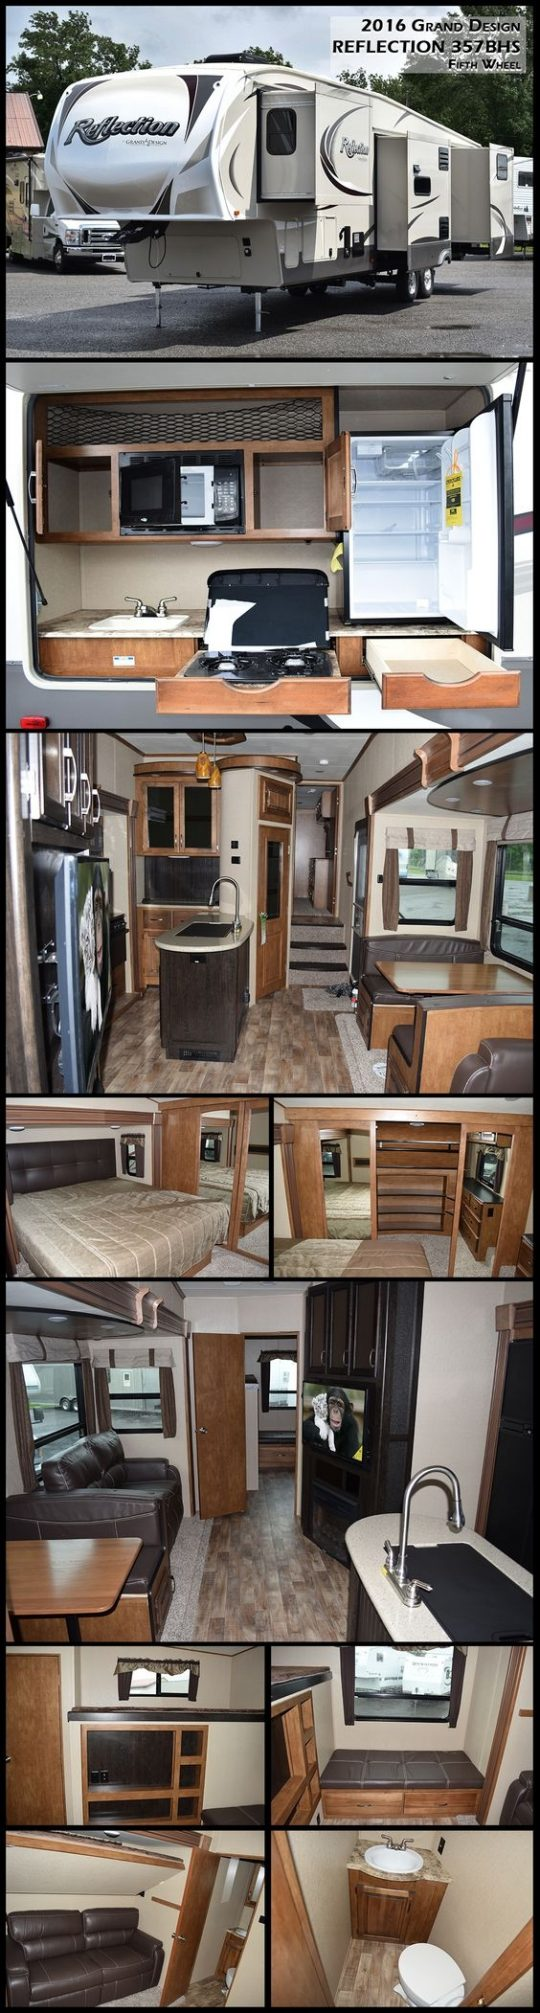 Permalink to One And A Half Bath Rv